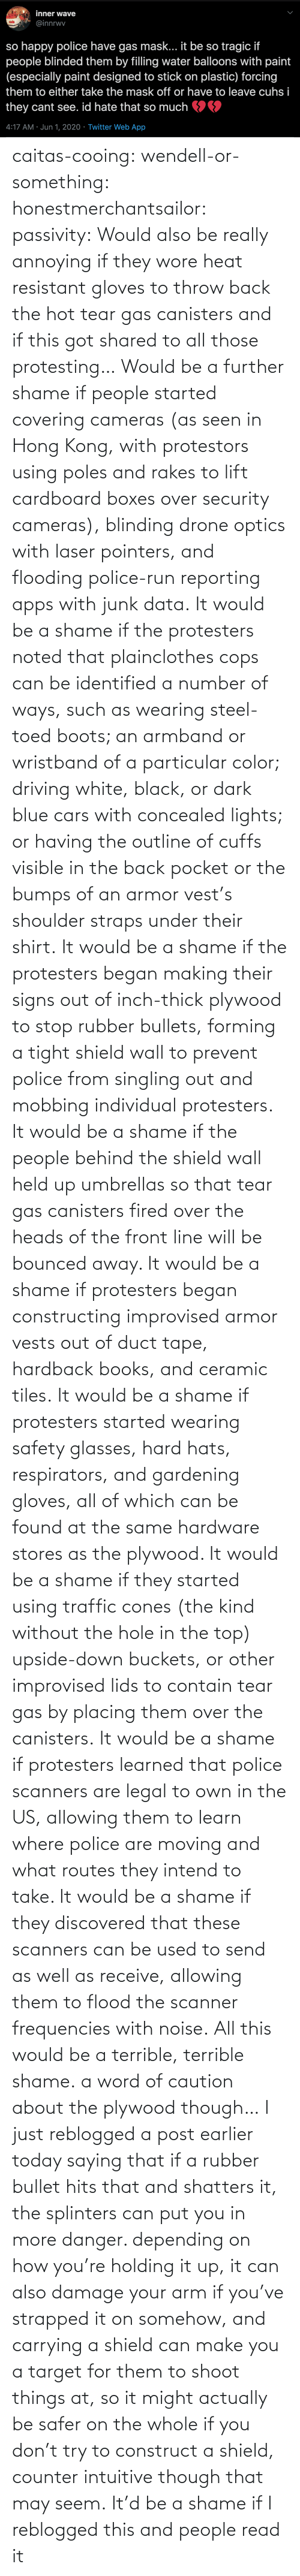 The Day: caitas-cooing:  wendell-or-something: honestmerchantsailor:  passivity: Would also be really annoying if they wore heat resistant gloves to throw back the hot tear gas canisters and if this got shared to all those protesting… Would be a further shame if people started covering cameras (as seen in Hong Kong, with protestors using poles and rakes to lift cardboard boxes over security cameras), blinding drone optics with laser pointers, and flooding police-run reporting apps with junk data. It would be a shame if the protesters noted that plainclothes cops can be identified a number of ways, such as wearing steel-toed boots; an armband or wristband of a particular color; driving white, black, or dark blue cars with concealed lights; or having the outline of cuffs visible in the back pocket or the bumps of an armor vest's shoulder straps under their shirt. It would be a shame if the protesters began making their signs out of inch-thick plywood to stop rubber bullets, forming a tight shield wall to prevent police from singling out and mobbing individual protesters. It would be a shame if the people behind the shield wall held up umbrellas so that tear gas canisters fired over the heads of the front line will be bounced away. It would be a shame if protesters began constructing improvised armor vests out of duct tape, hardback books, and ceramic tiles. It would be a shame if protesters started wearing safety glasses, hard hats, respirators, and gardening gloves, all of which can be found at the same hardware stores as the plywood. It would be a shame if they started using traffic cones (the kind without the hole in the top) upside-down buckets, or other improvised lids to contain tear gas by placing them over the canisters. It would be a shame if protesters learned that police scanners are legal to own in the US, allowing them to learn where police are moving and what routes they intend to take. It would be a shame if they discovered that these scanners can be used to send as well as receive, allowing them to flood the scanner frequencies with noise. All this would be a terrible, terrible shame.    a word of caution about the plywood though… I just reblogged a post earlier today saying that if a rubber bullet hits that and shatters it, the splinters can put you in more danger. depending on how you're holding it up, it can also damage your arm if you've strapped it on somehow, and carrying a shield can make you a target for them to shoot things at, so it might actually be safer on the whole if you don't try to construct a shield, counter intuitive though that may seem.    It'd be a shame if I reblogged this and people read it